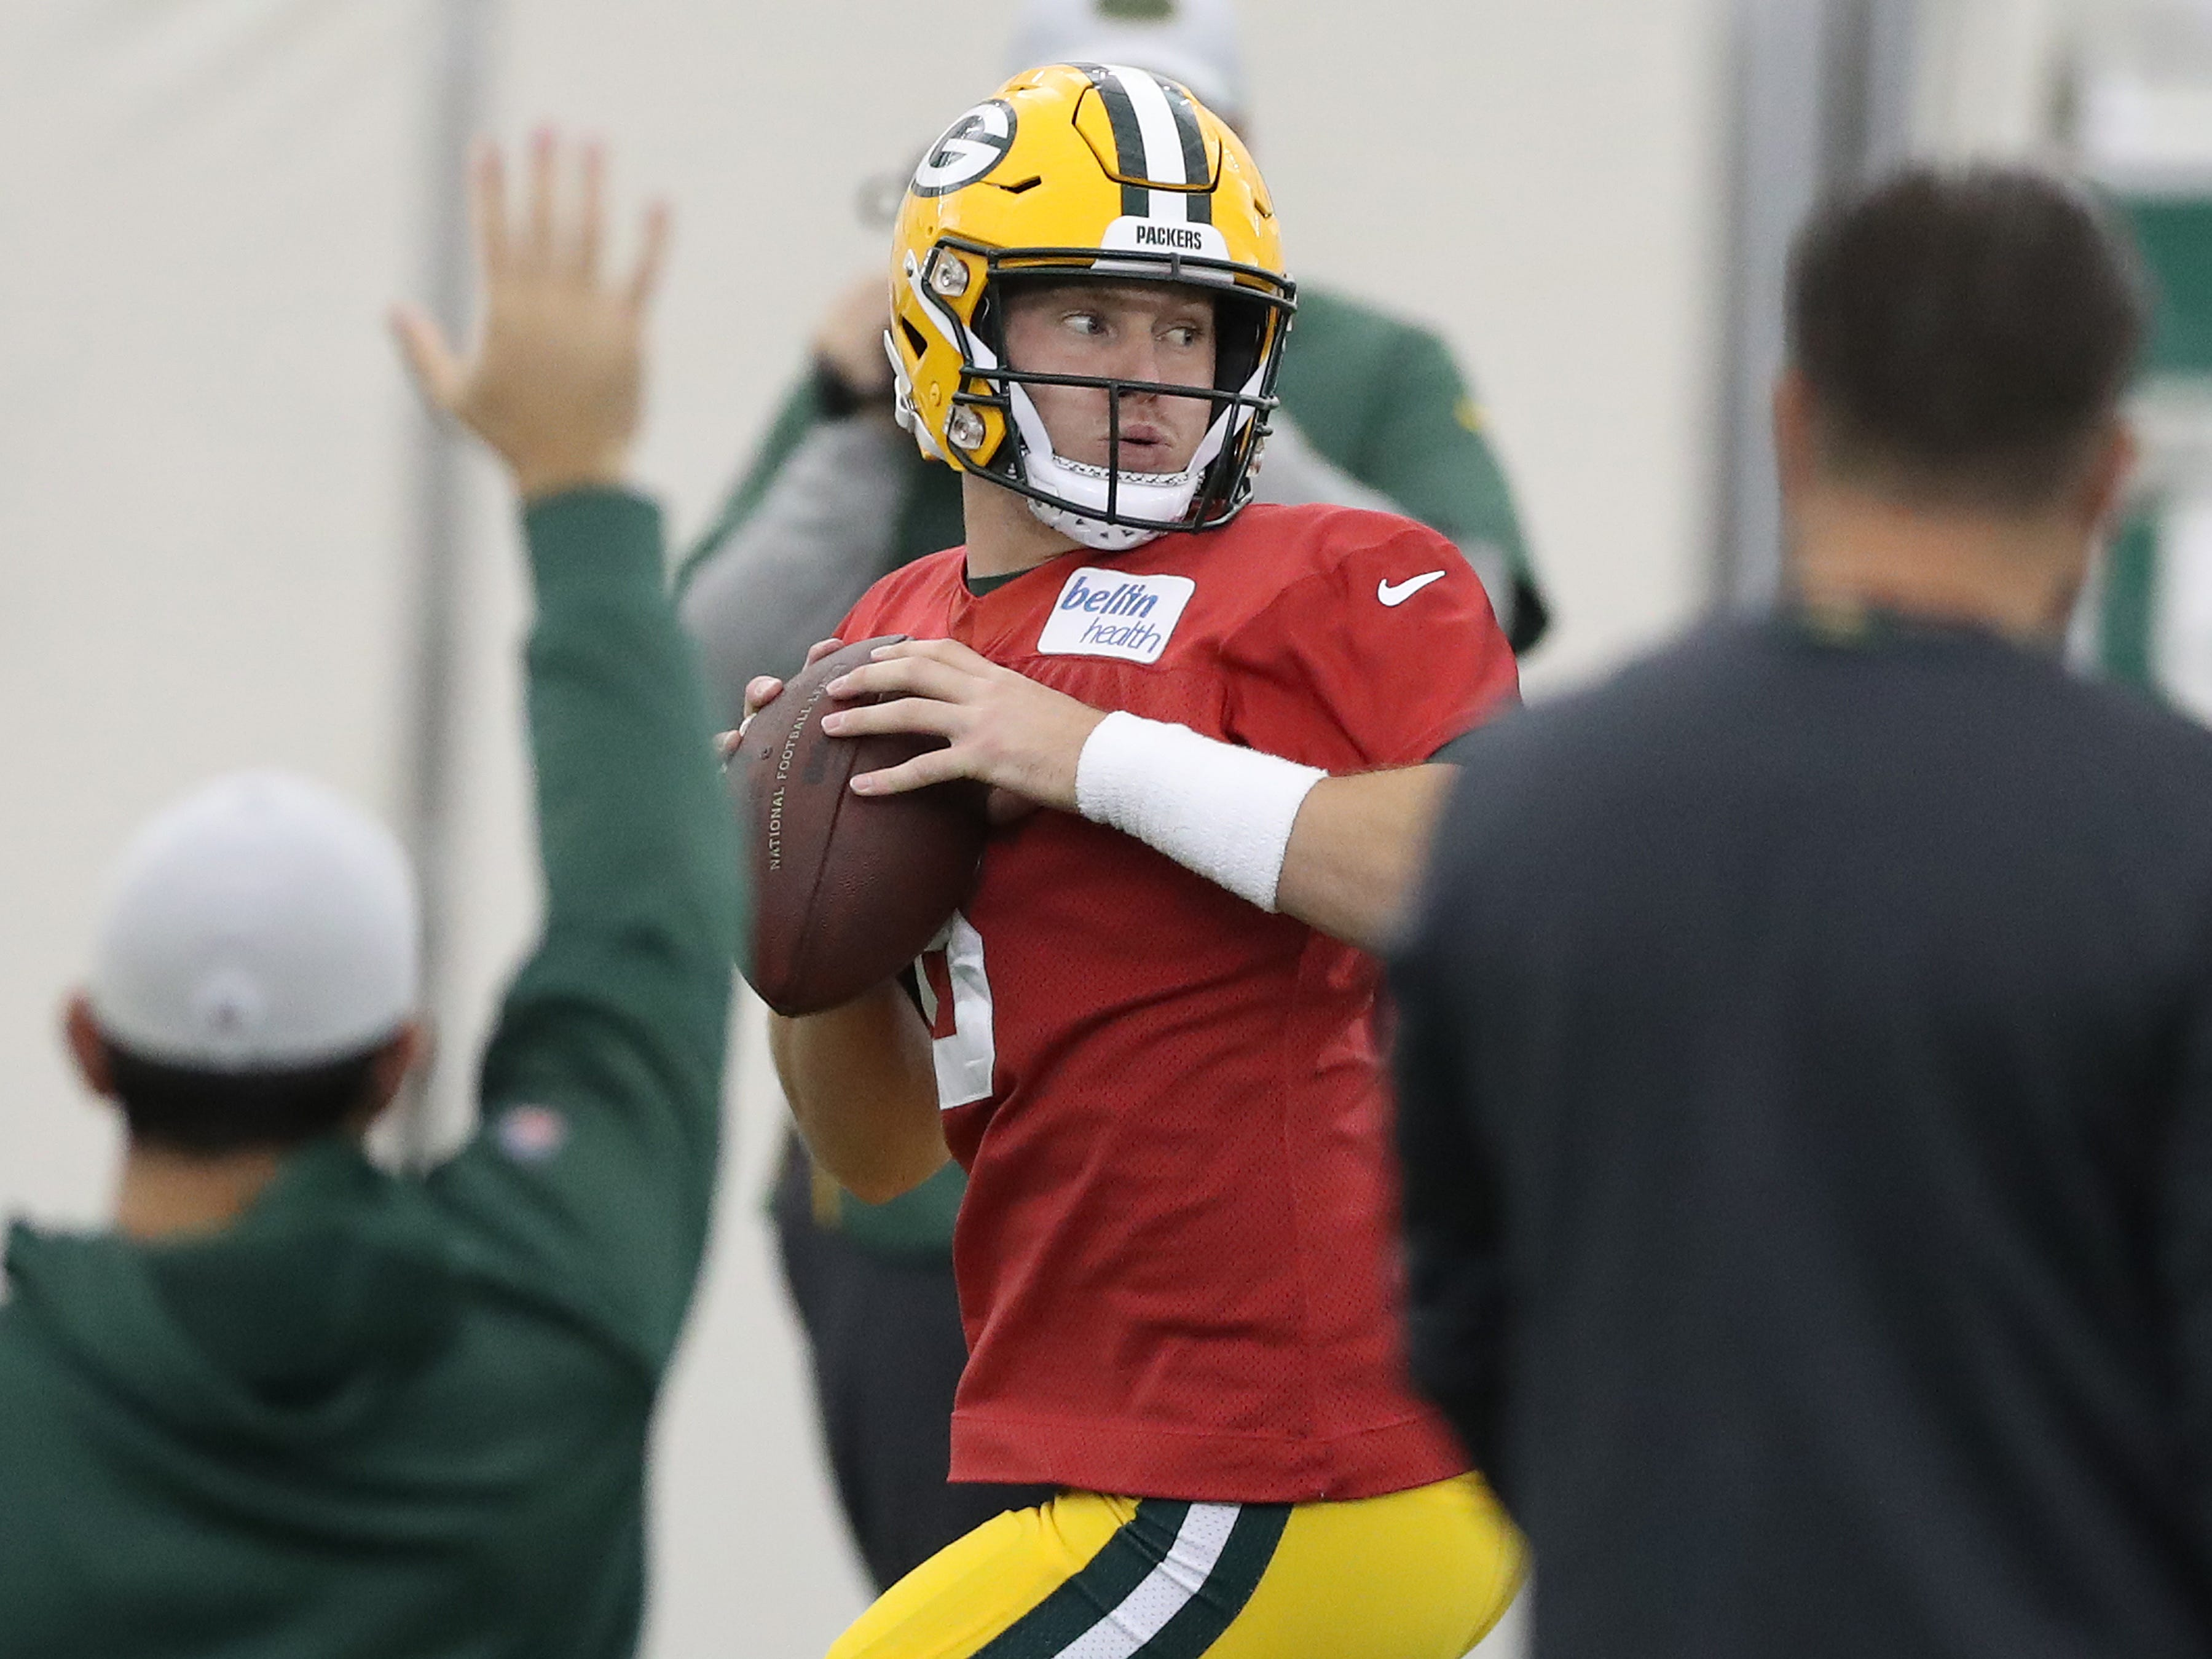 Green Bay Packers quarterback Tim Boyle (8) runs a drill during practice inside the Hutson Center Thursday, October 11, 2018 in Ashwaubenon, Wis.